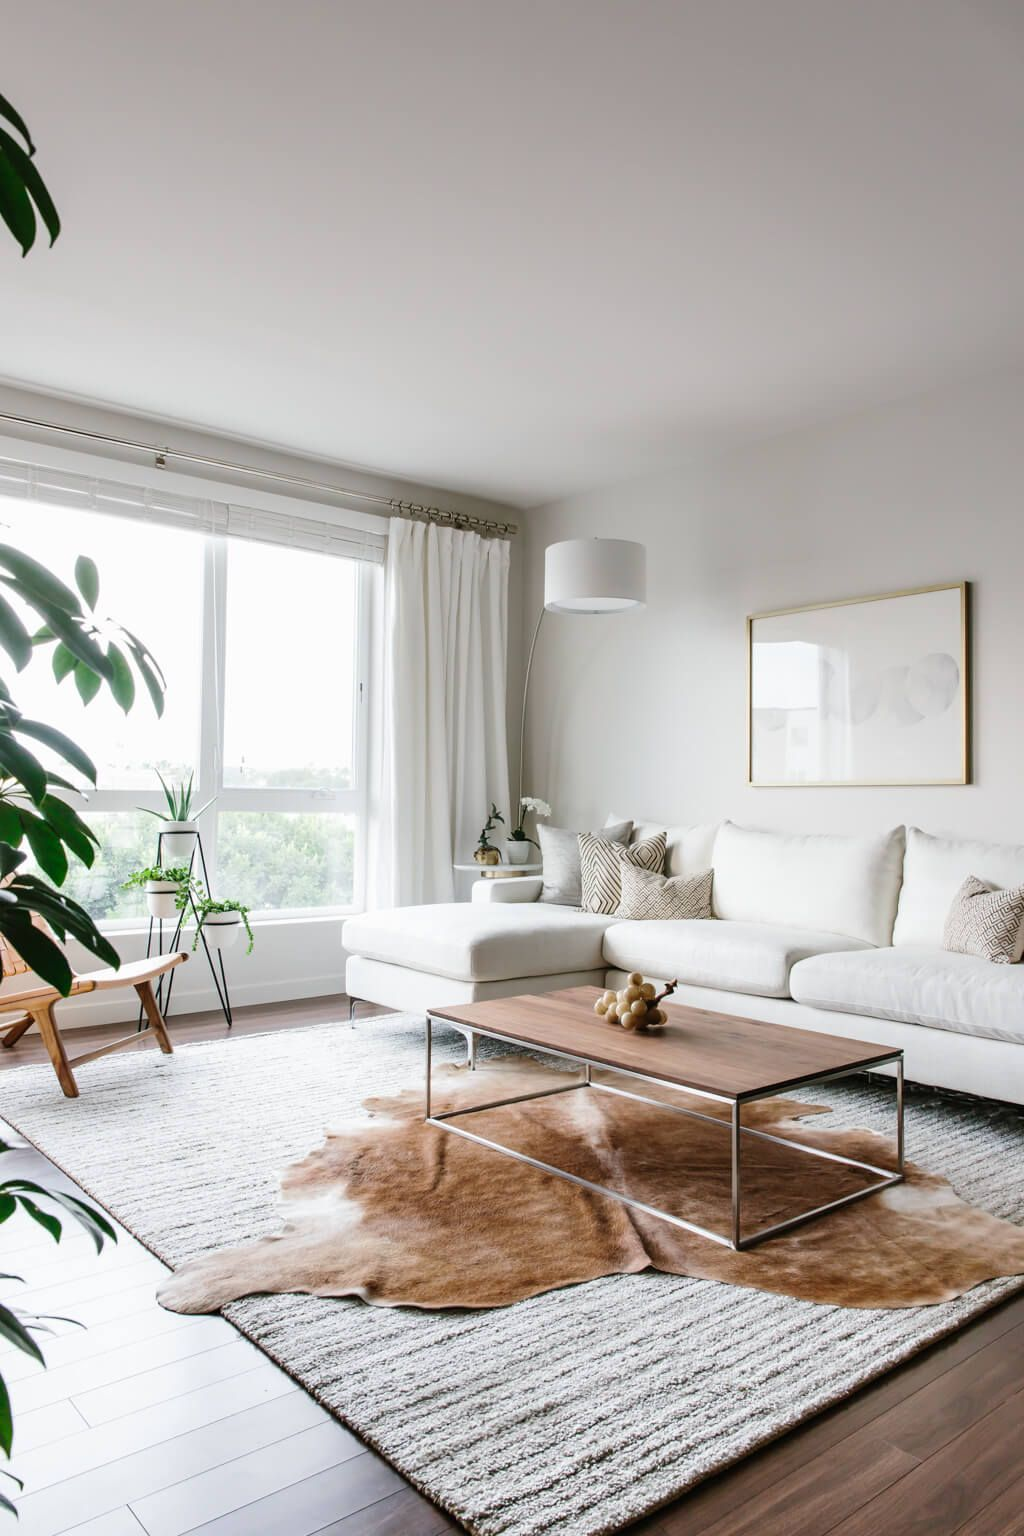 Take a tour of my modern and minimalist living room my interior design style is a blend of minimalism mid century modern scandinavian and socal vibes